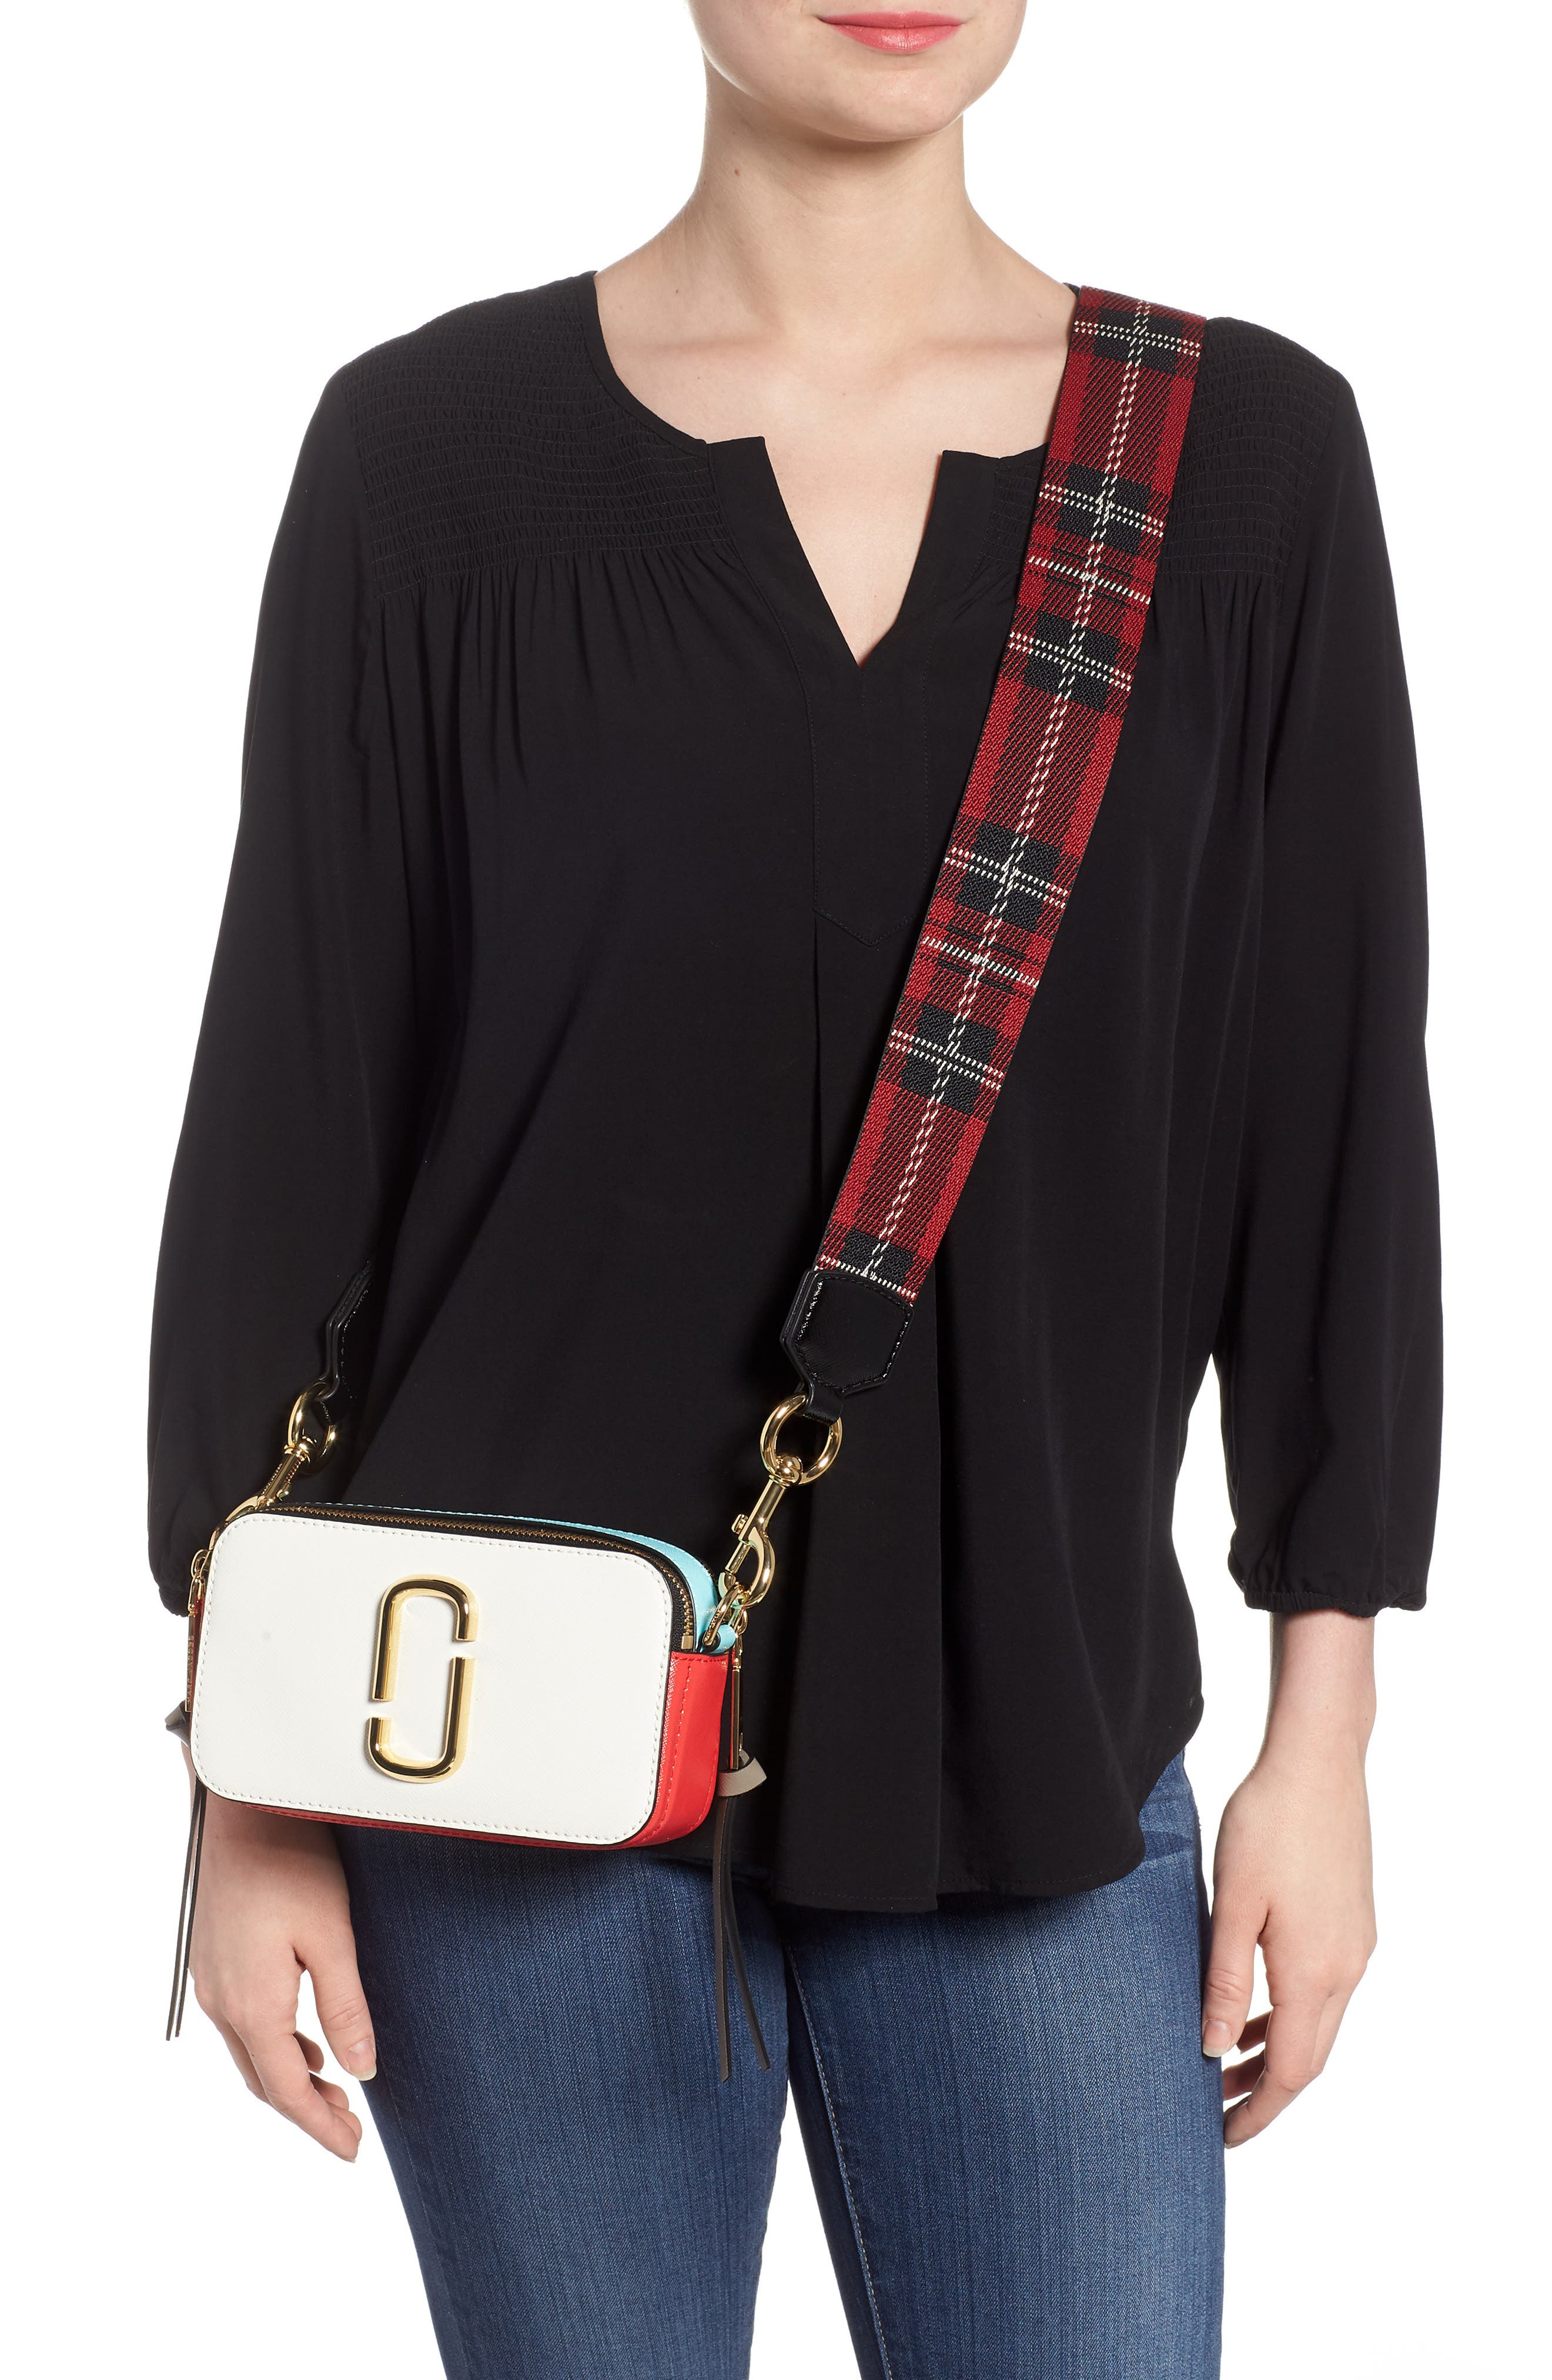 Marc Jacobs Wear To Where Looks For Every Occasion Women Bianca Top Leux Studio Silver L Nordstrom